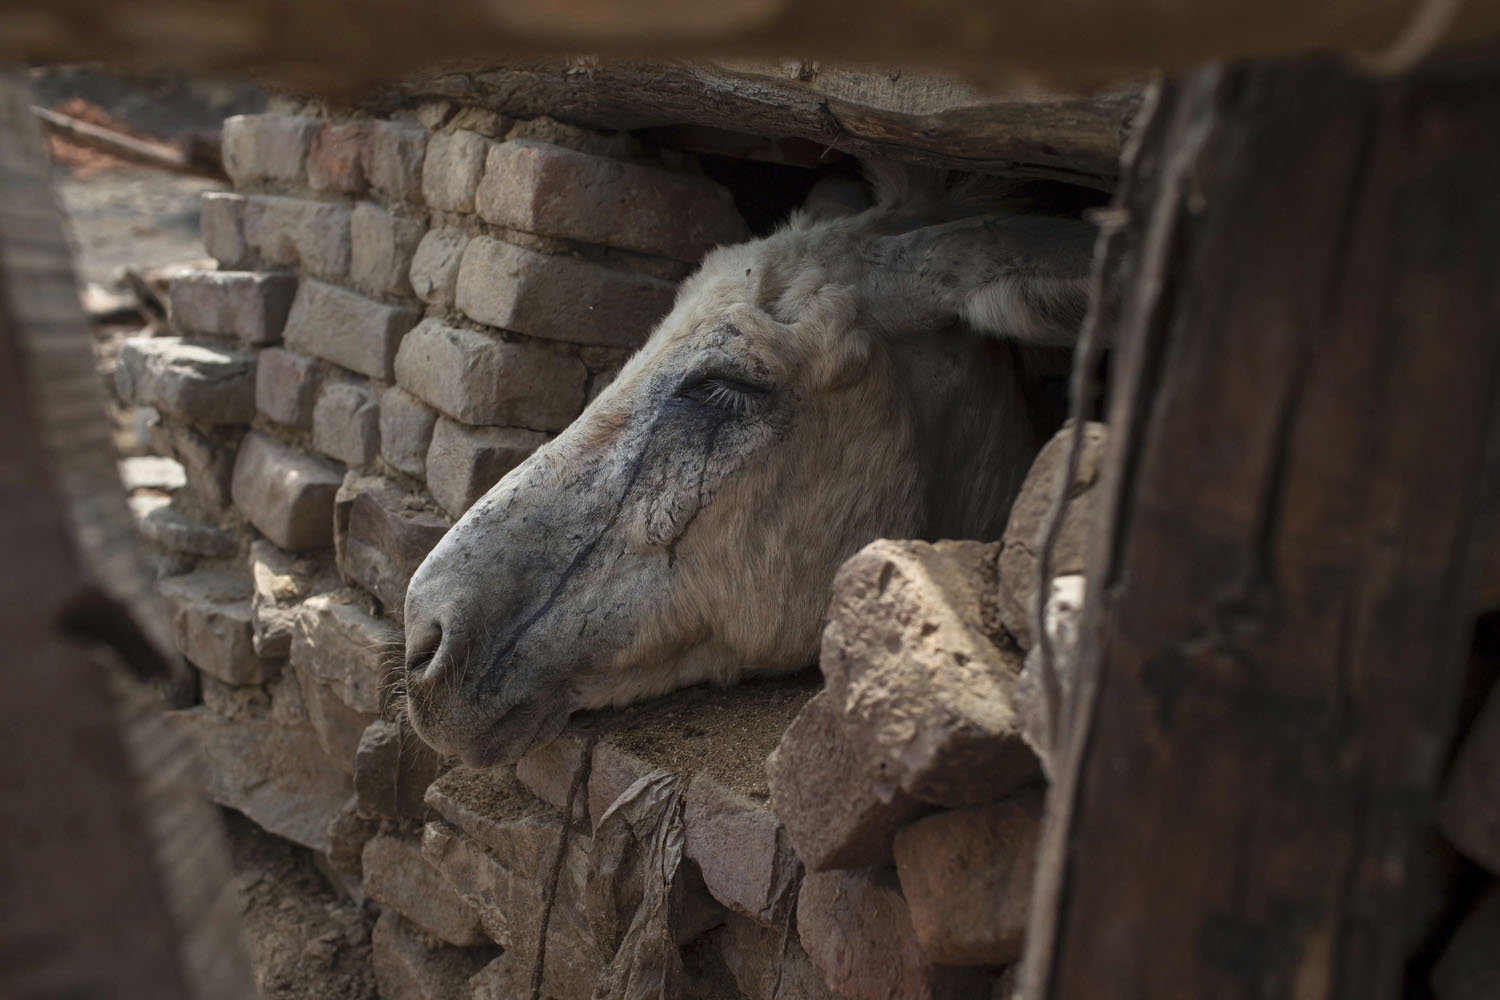 May 5, 2014. Tears of coal dust run down a donkey's face as it looks out of its shelter at a coal mine in Choa Saidan Shah in Punjab province, Pakistan.